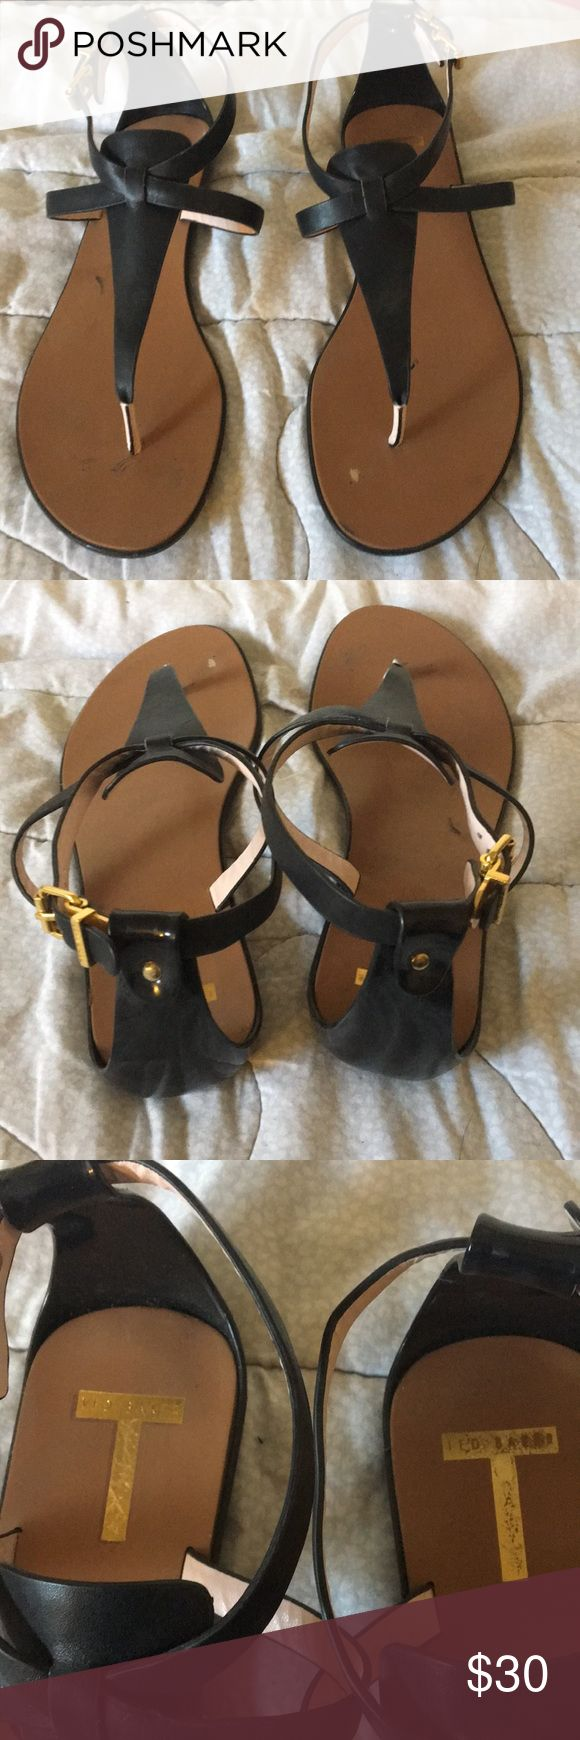 Ted Baker Leather Sandals Good condition! A couple of marks on them as shown above, but won't be noticeable when they are on. Real leather. Gold hardware. Ted Baker Shoes Sandals